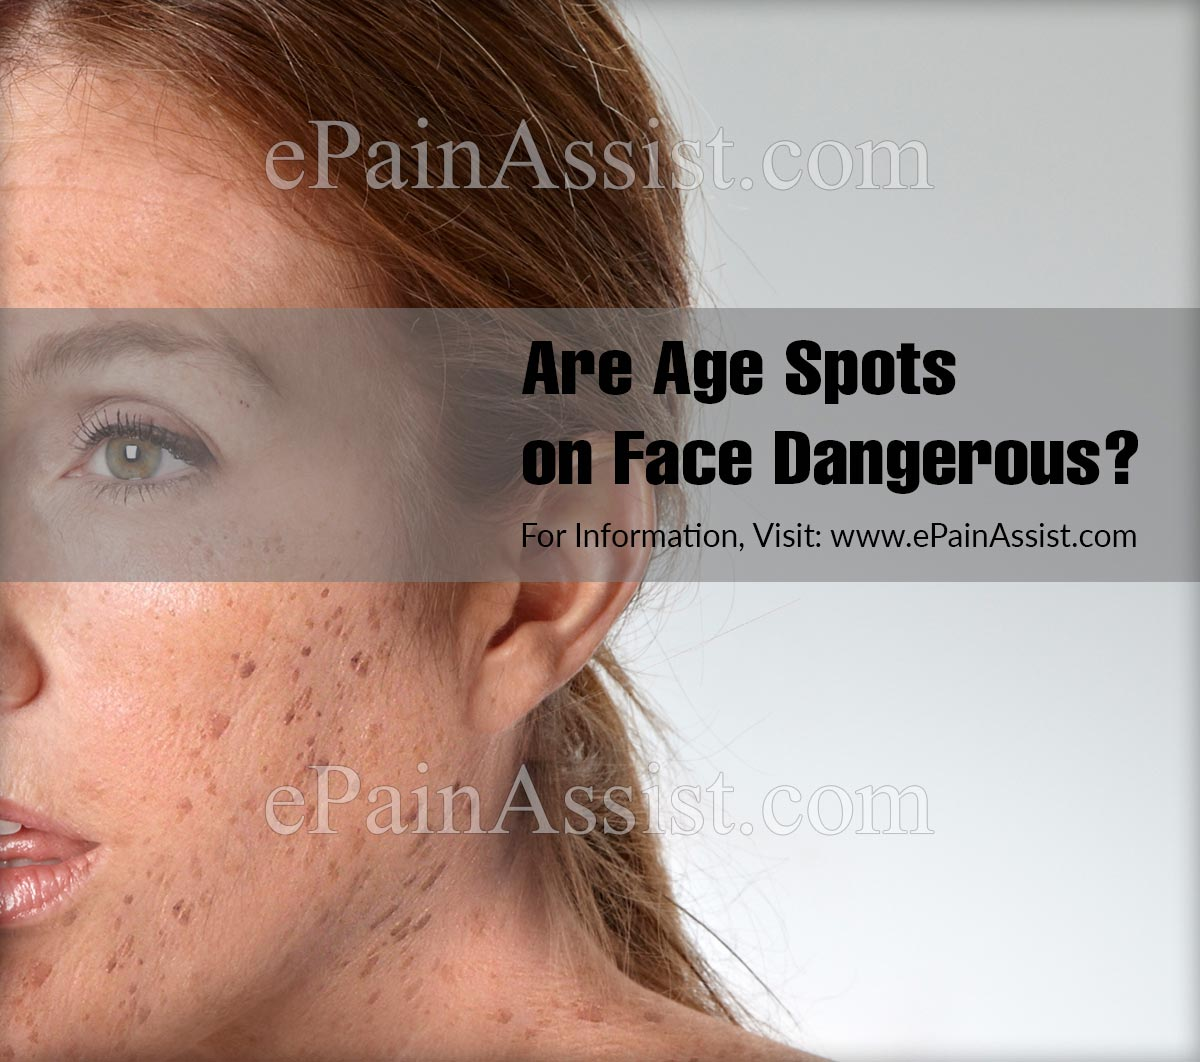 Are Age Spots On Face Dangerous?